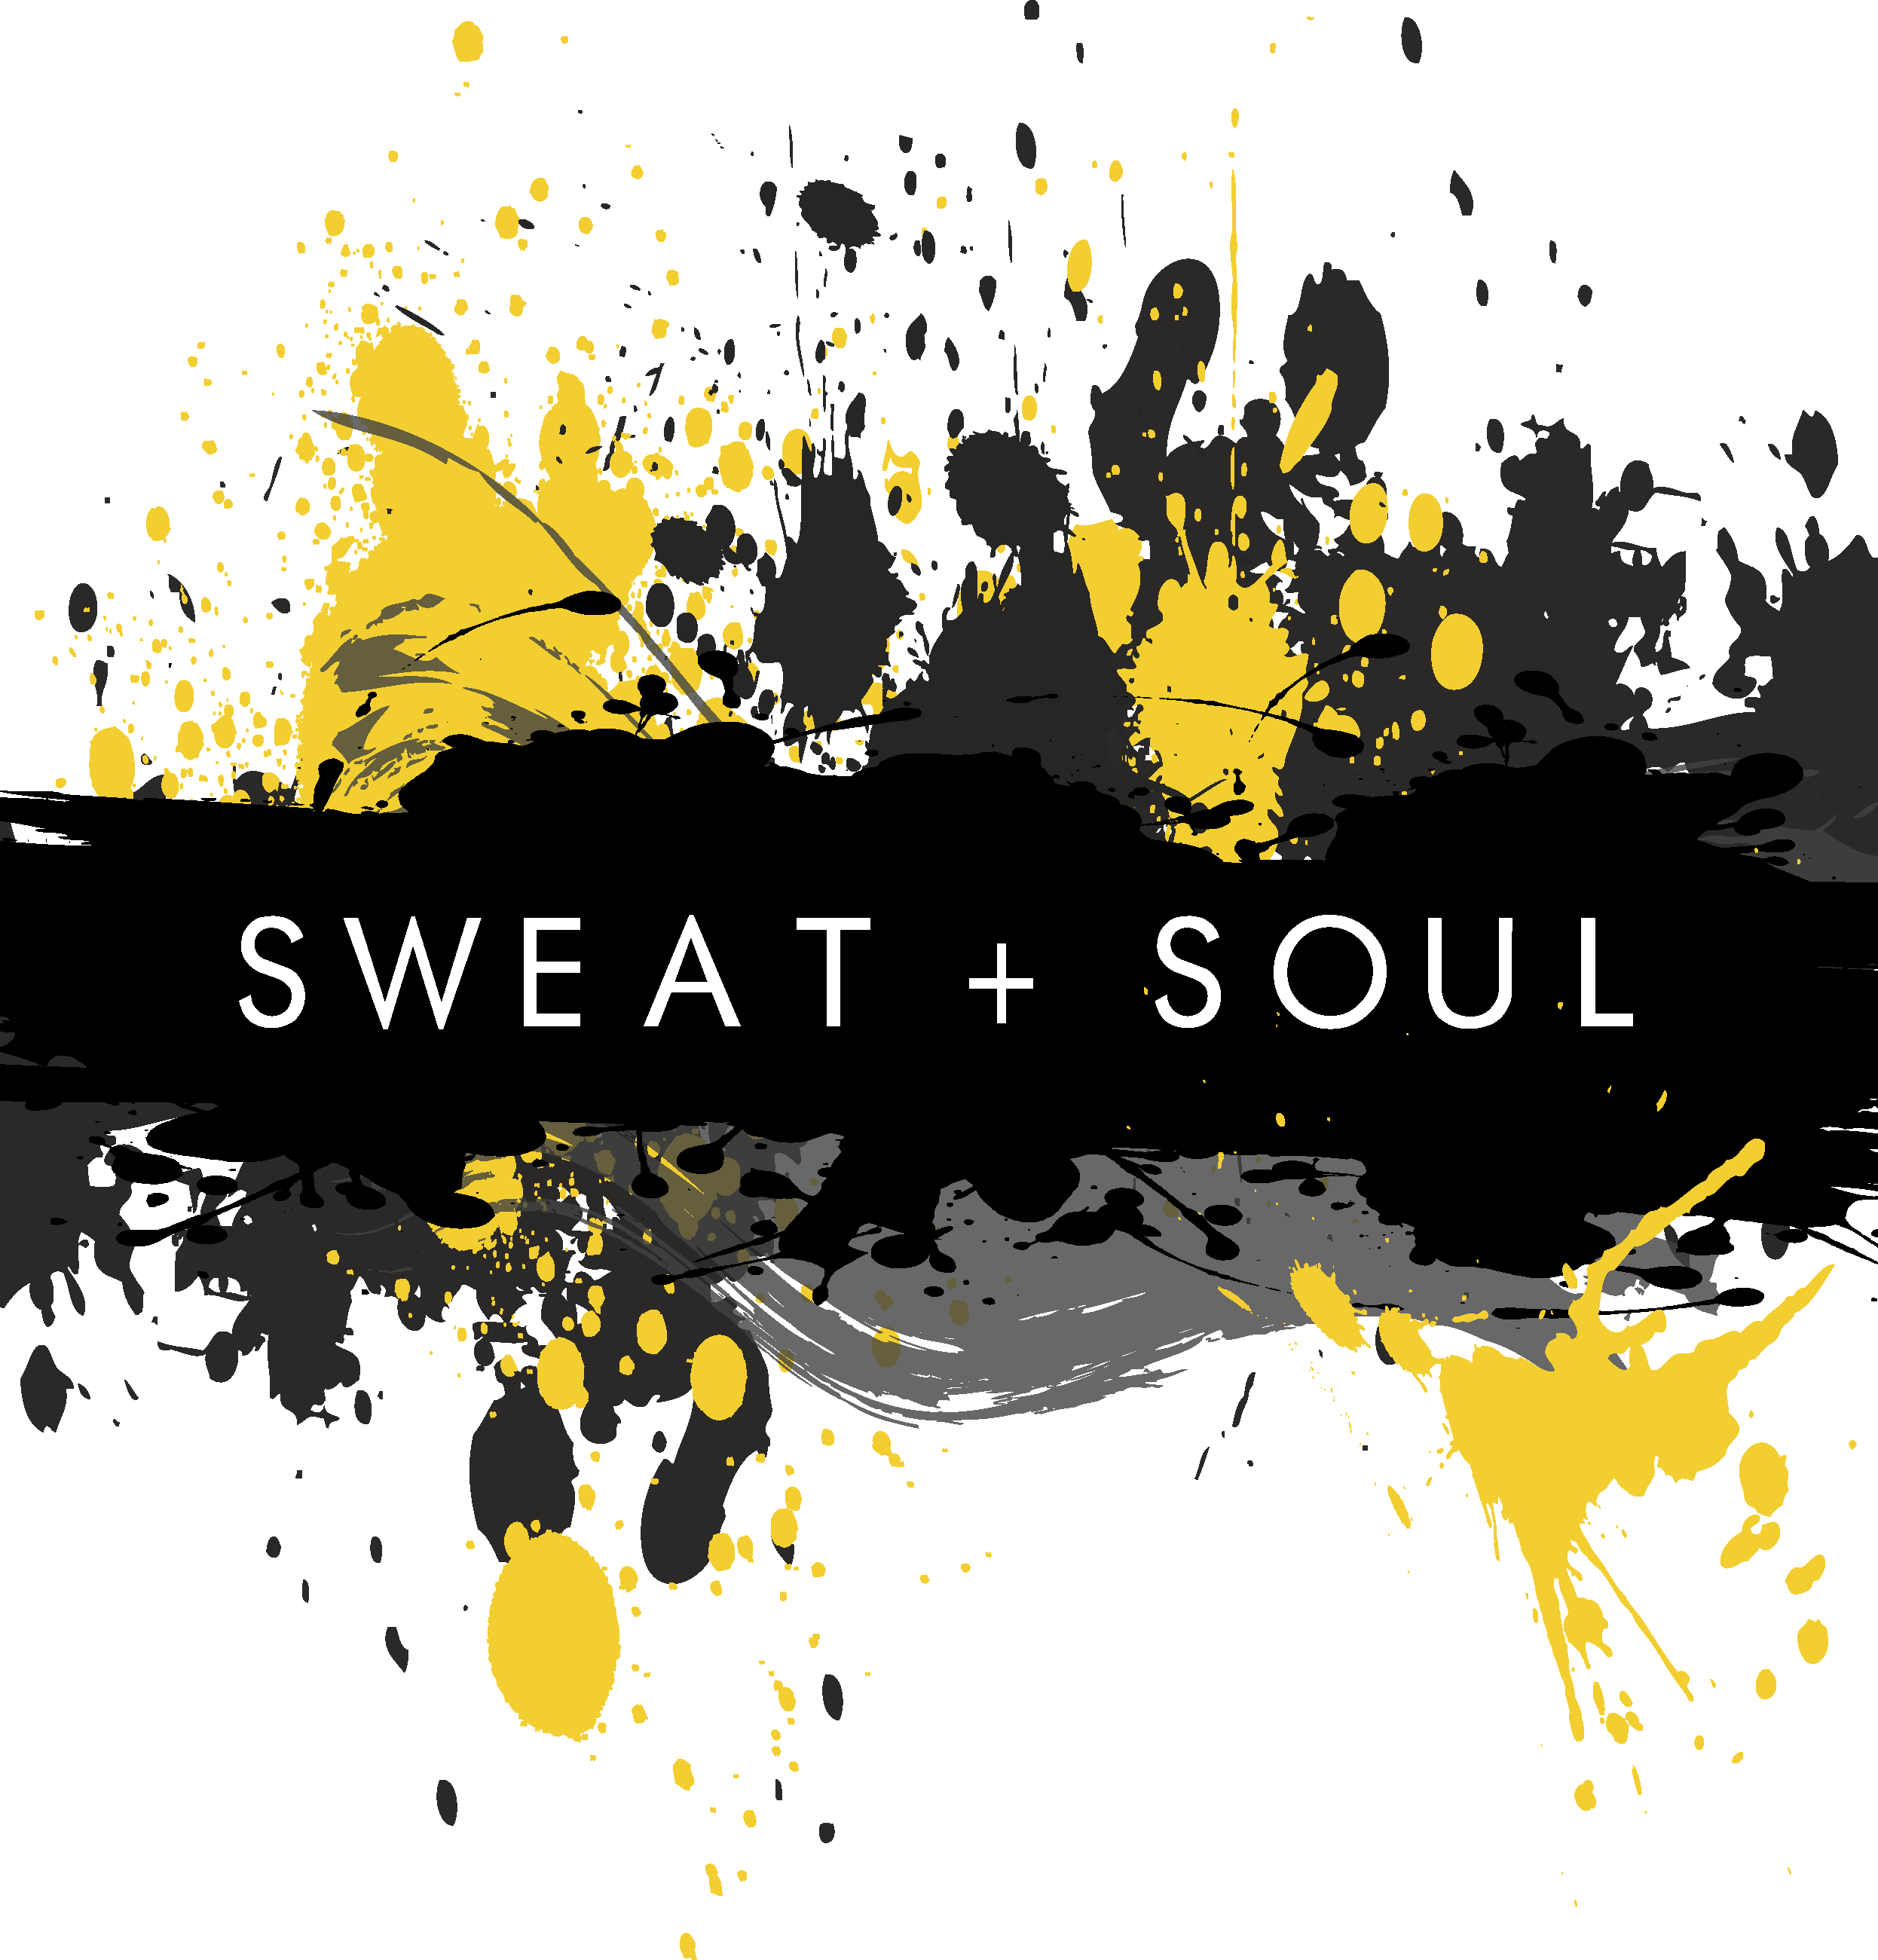 LATEST PROJECT - SWEAT+SOUL at SXSWAUSTIN, TEXAS